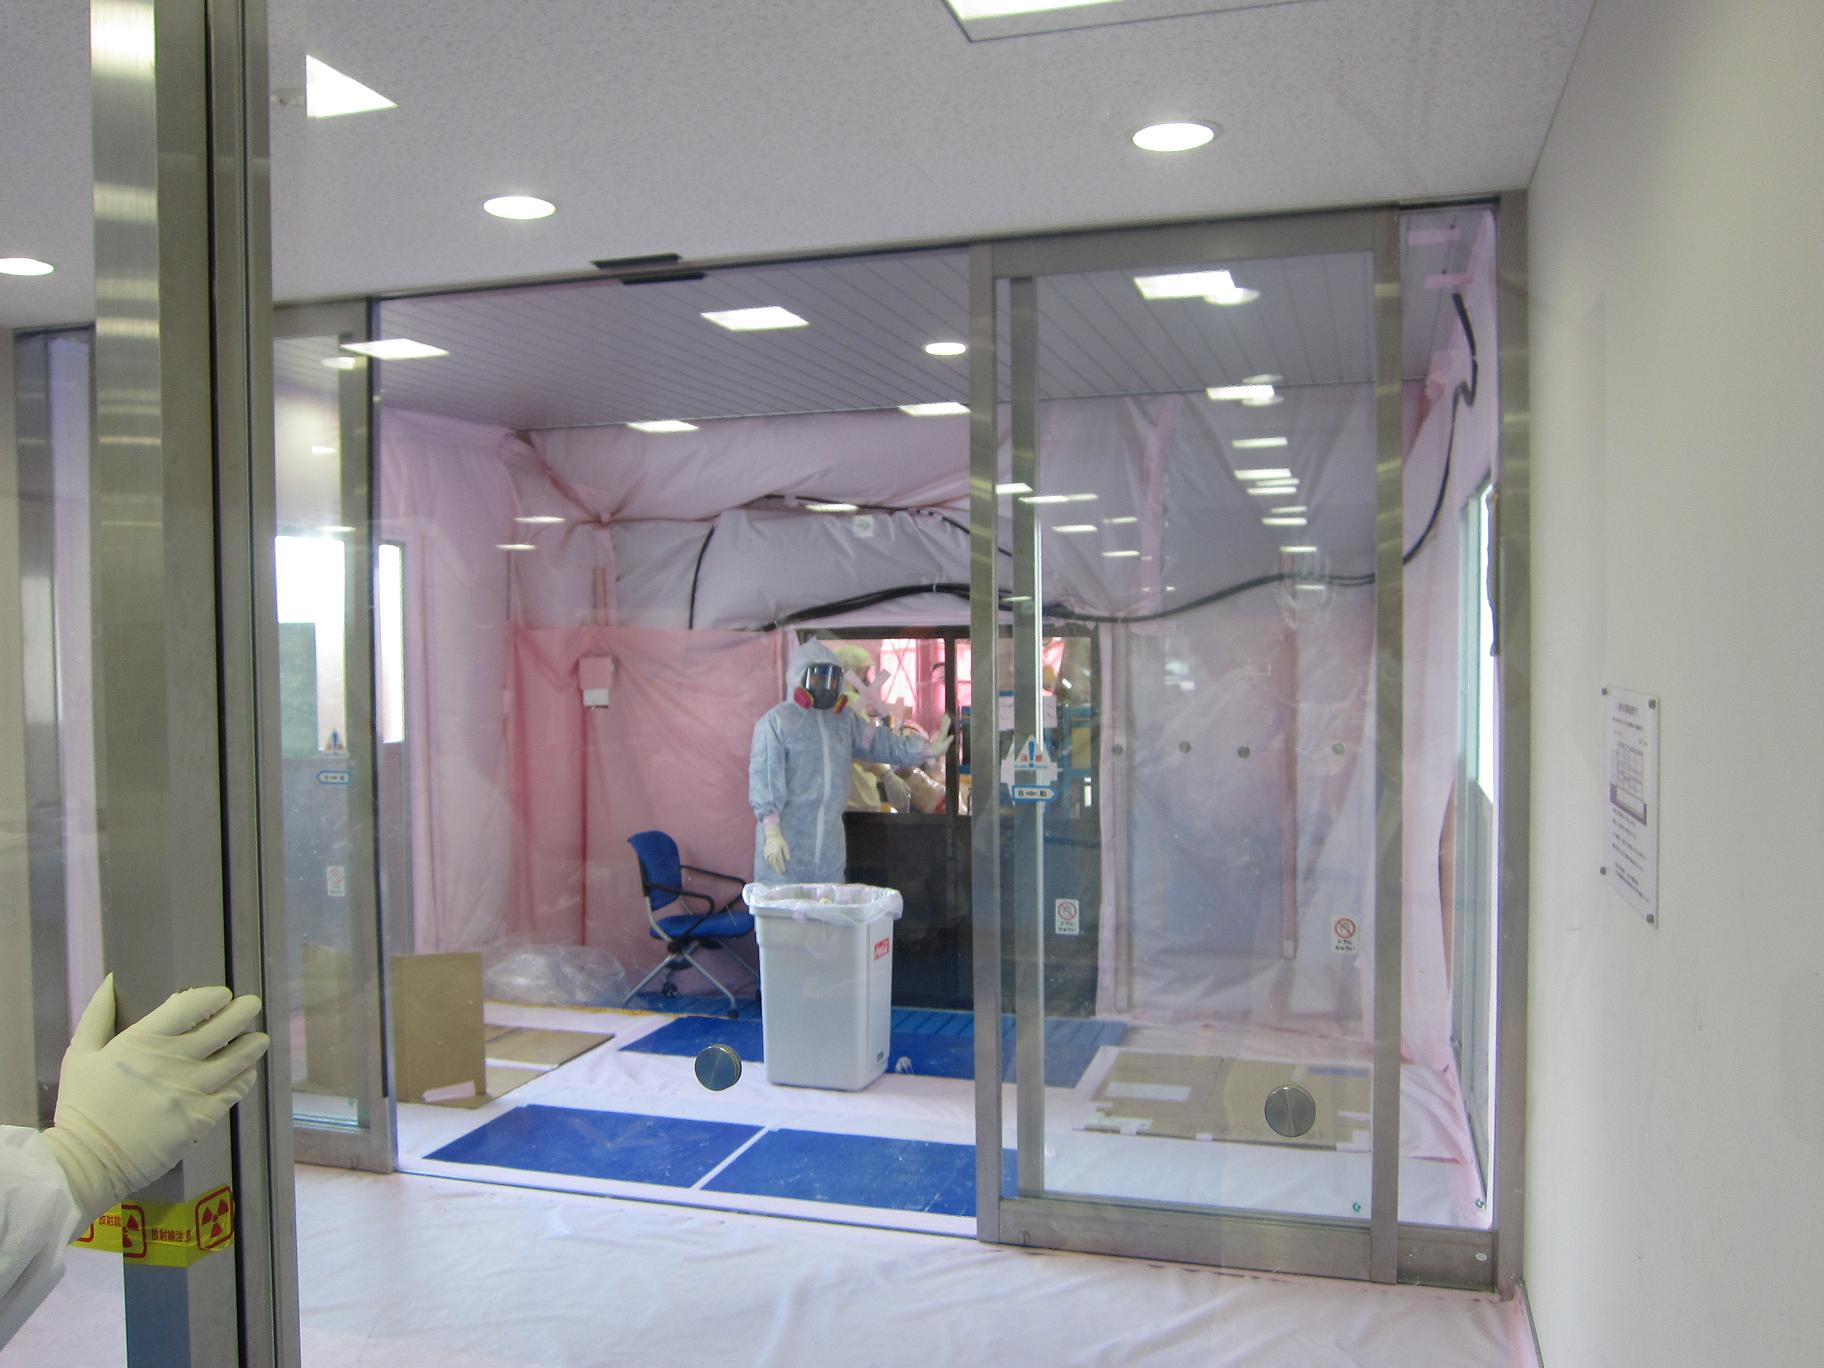 Installed de-contamination area of the quake-proof building (to expand the radiological protection space) :on March 26